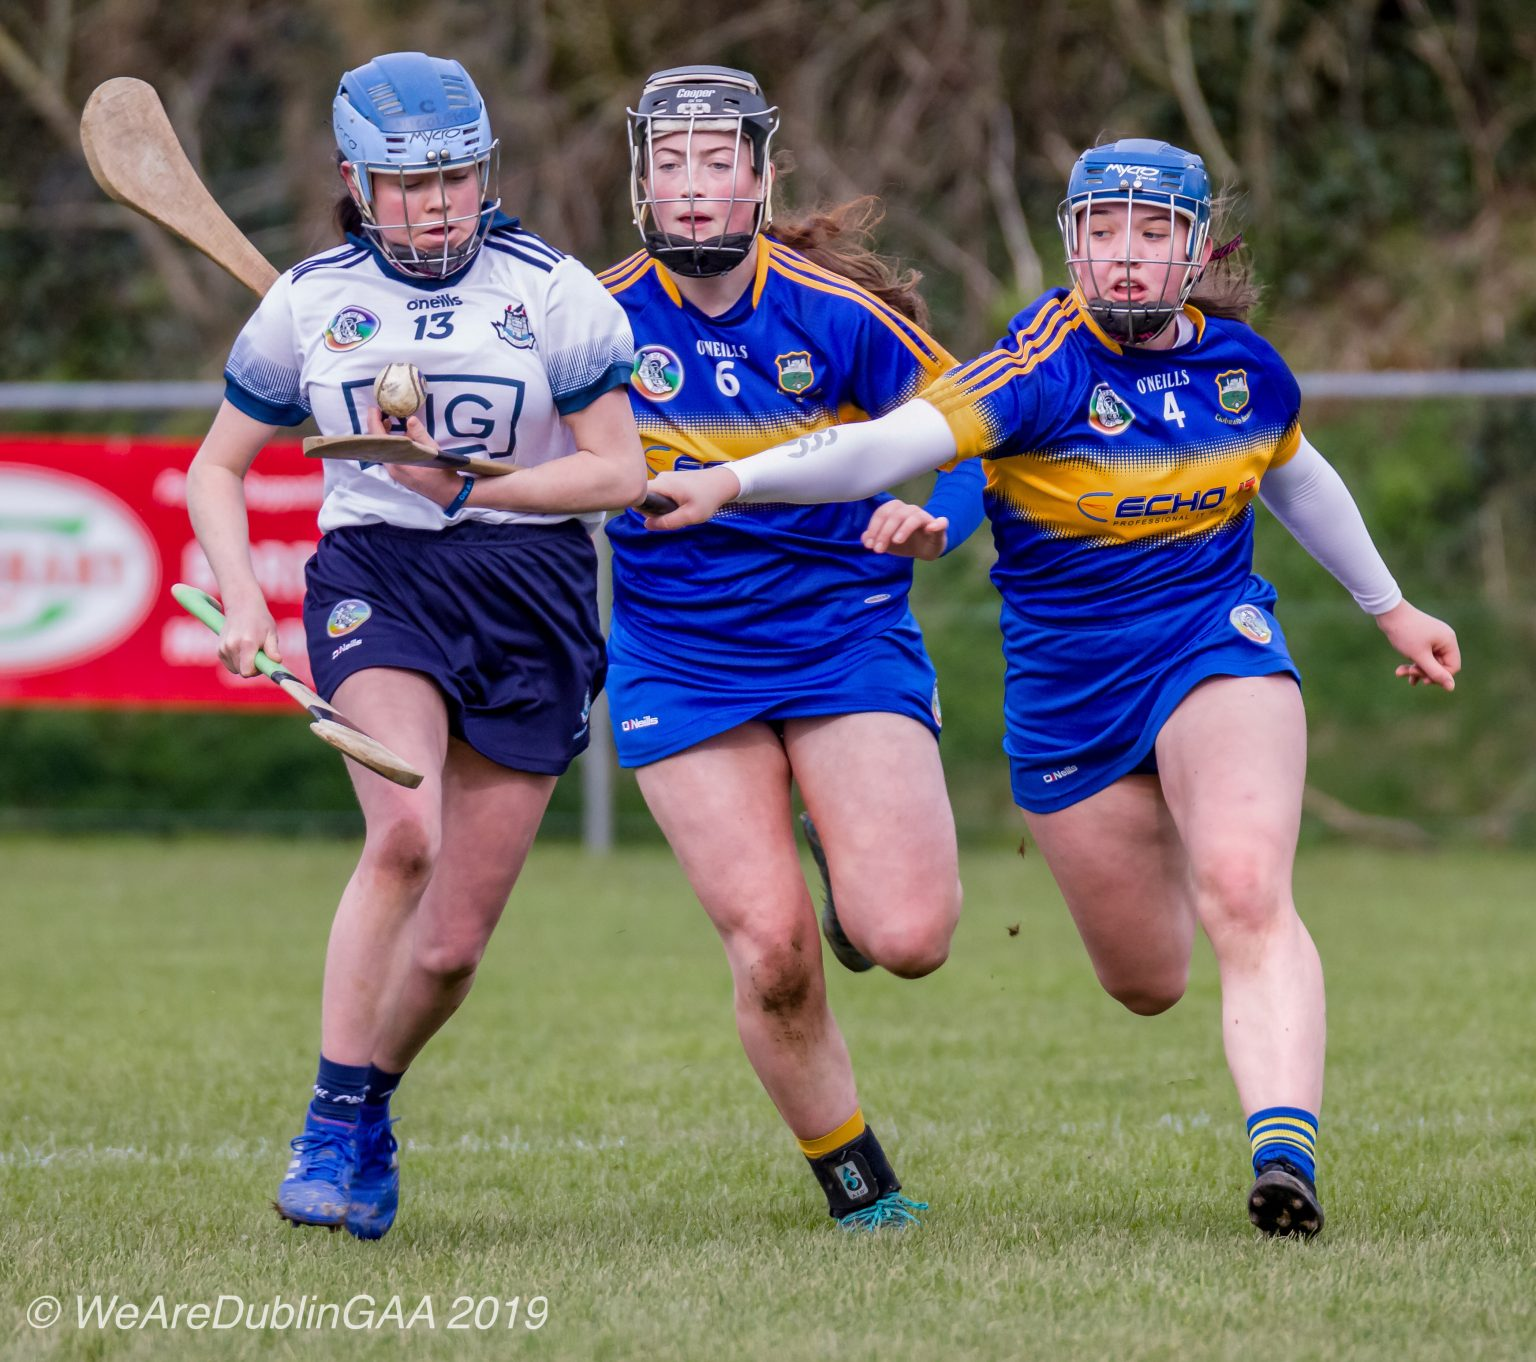 A Dublin Minor camogie player in a white jersey,navy skort and light blue helmet is tackled by two Tipperary players in dark blue jersey with yellow stripe across the front, dark blue Skort and blue helmets